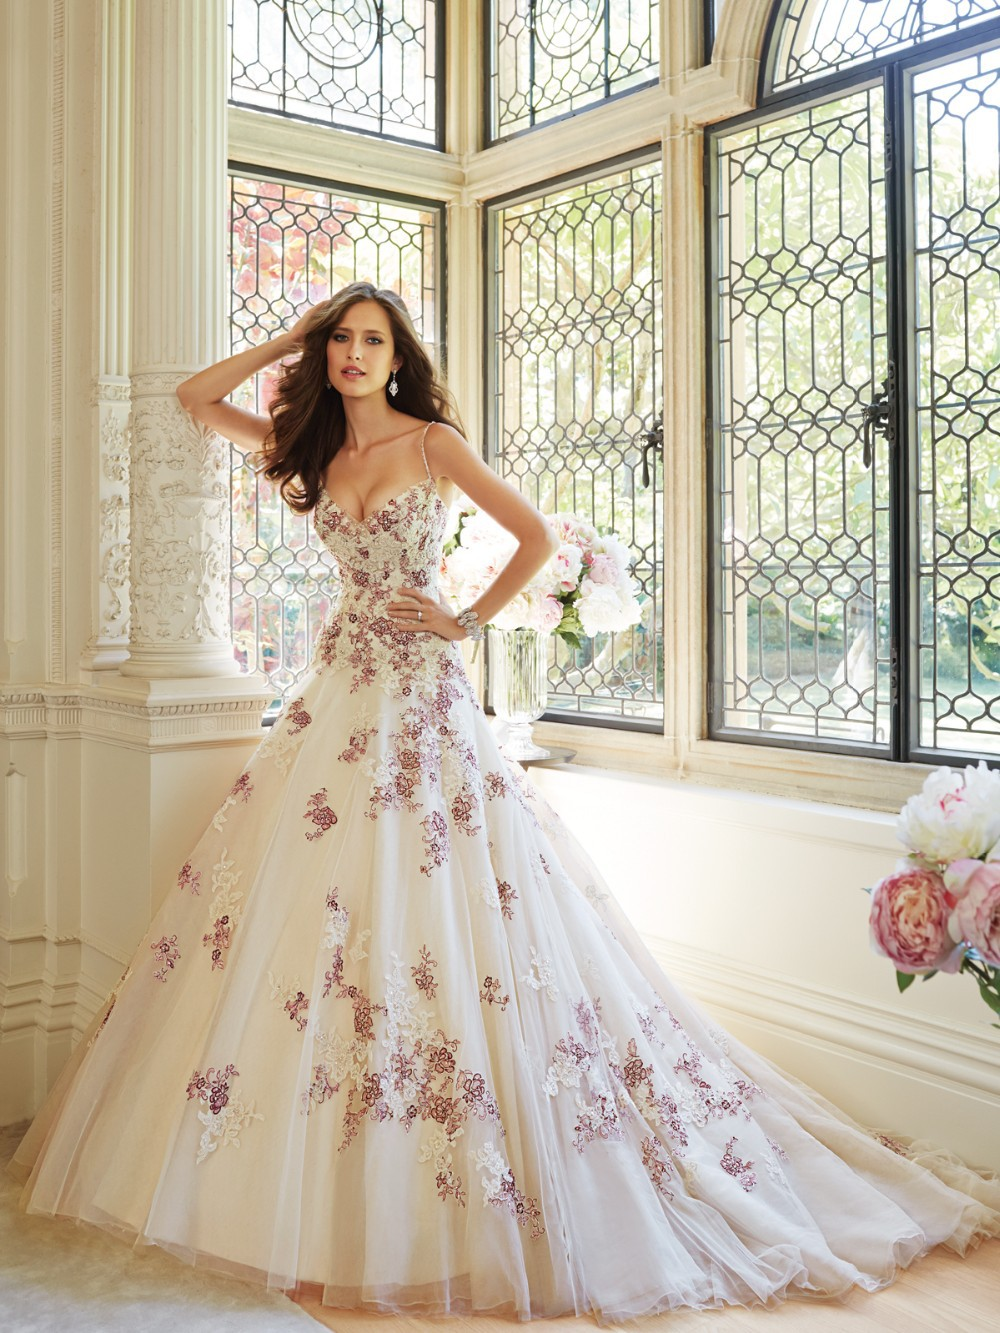 White Wedding Dress With Purple Flowers Weddings Dresses